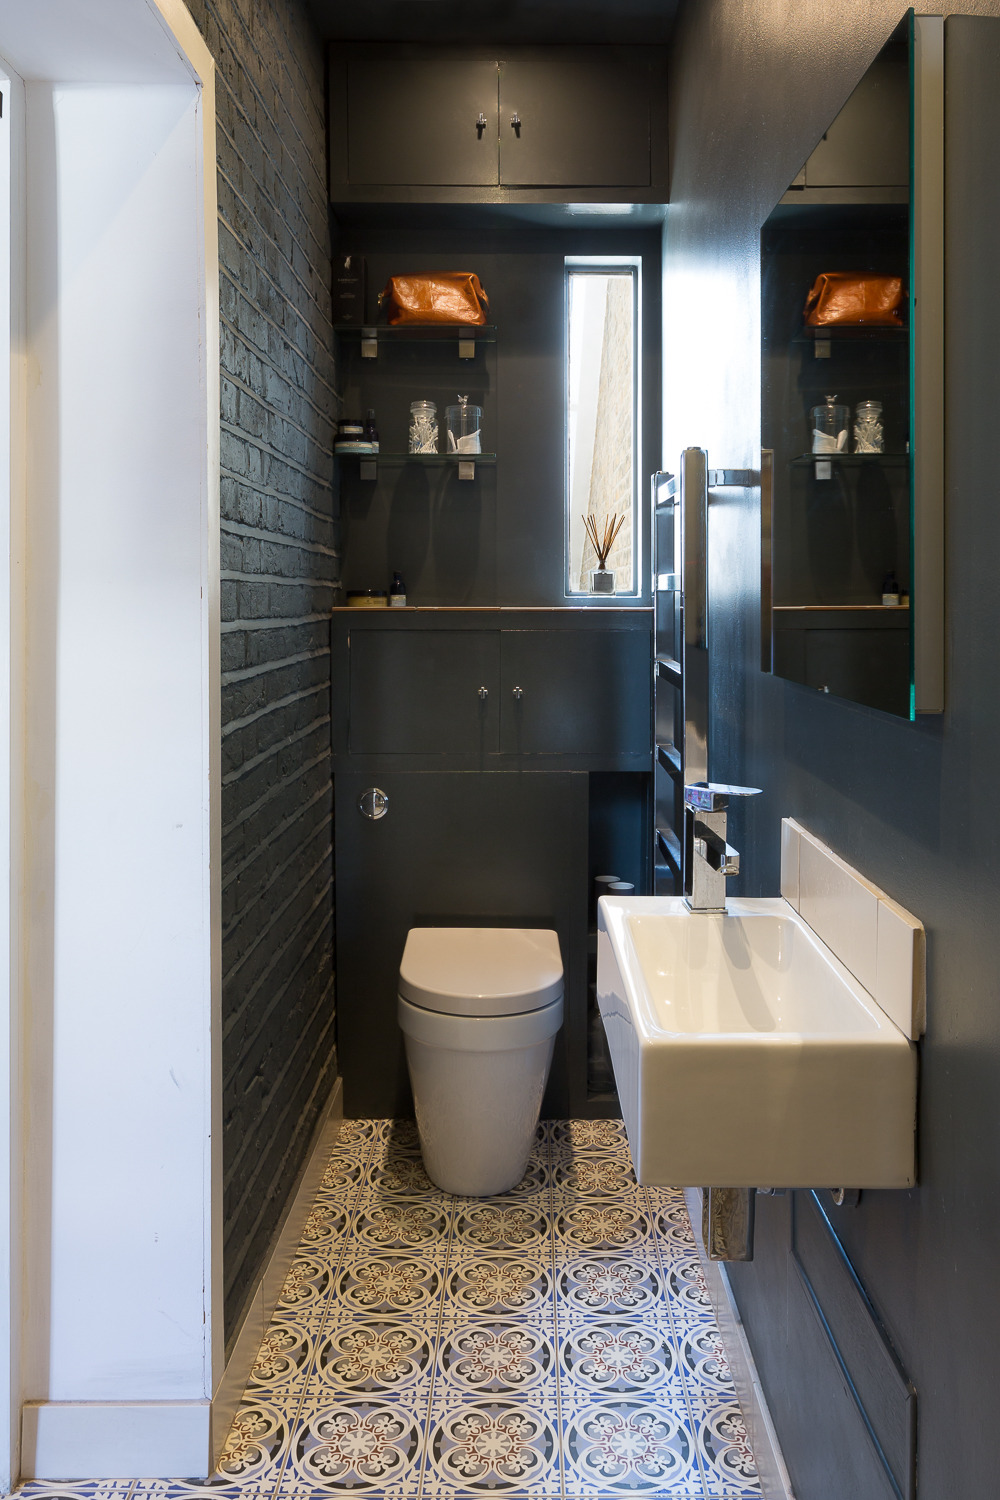 A slim ensuite bathroom that projects out into the side passageway.